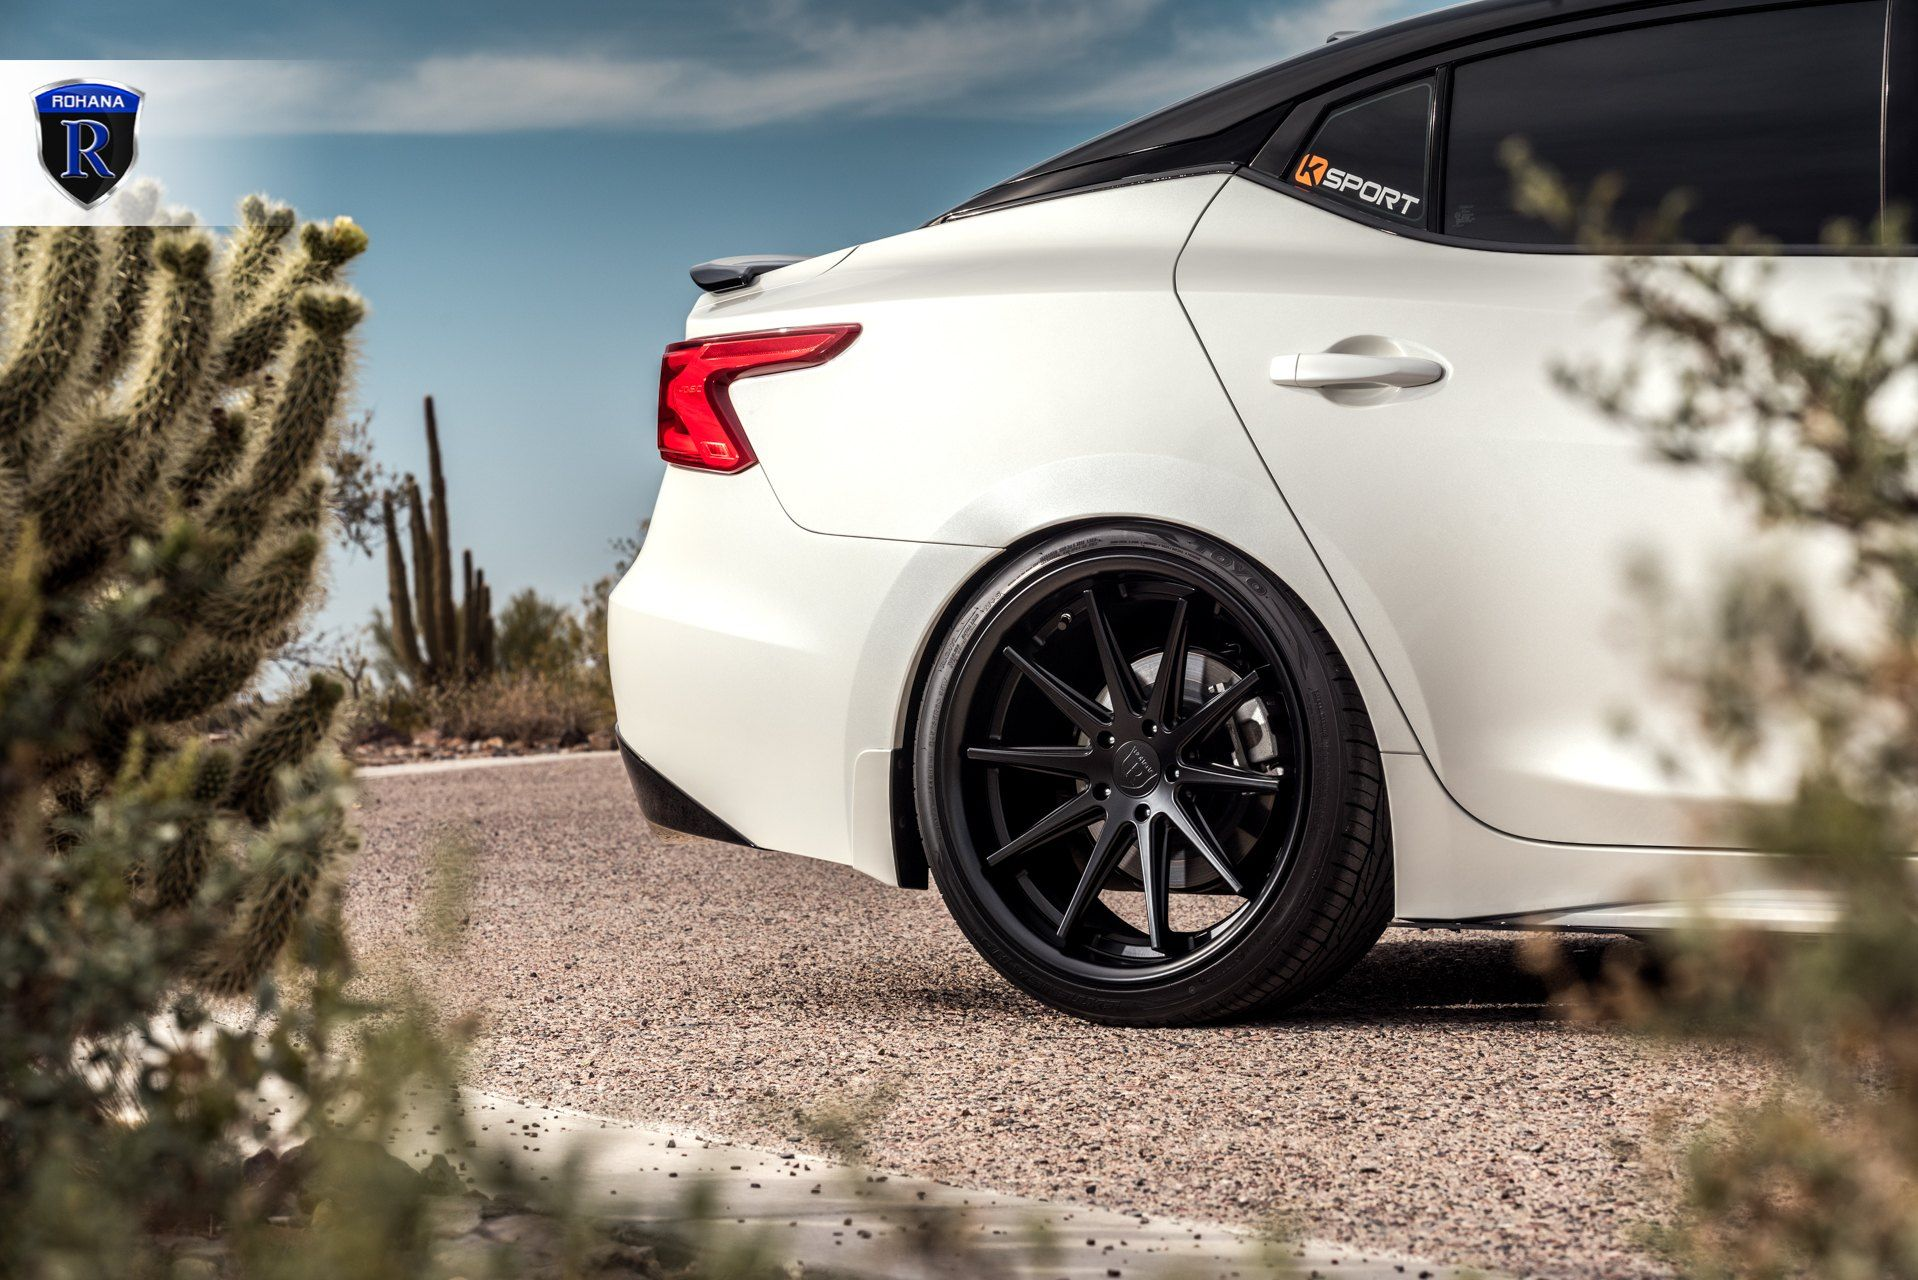 Matte Black Rohana Wheels And Blacked Out Mesh Grille Contrast With White Nissan Maxima Carid Com Gallery Nissan Maxima Nissan Rohana Wheels